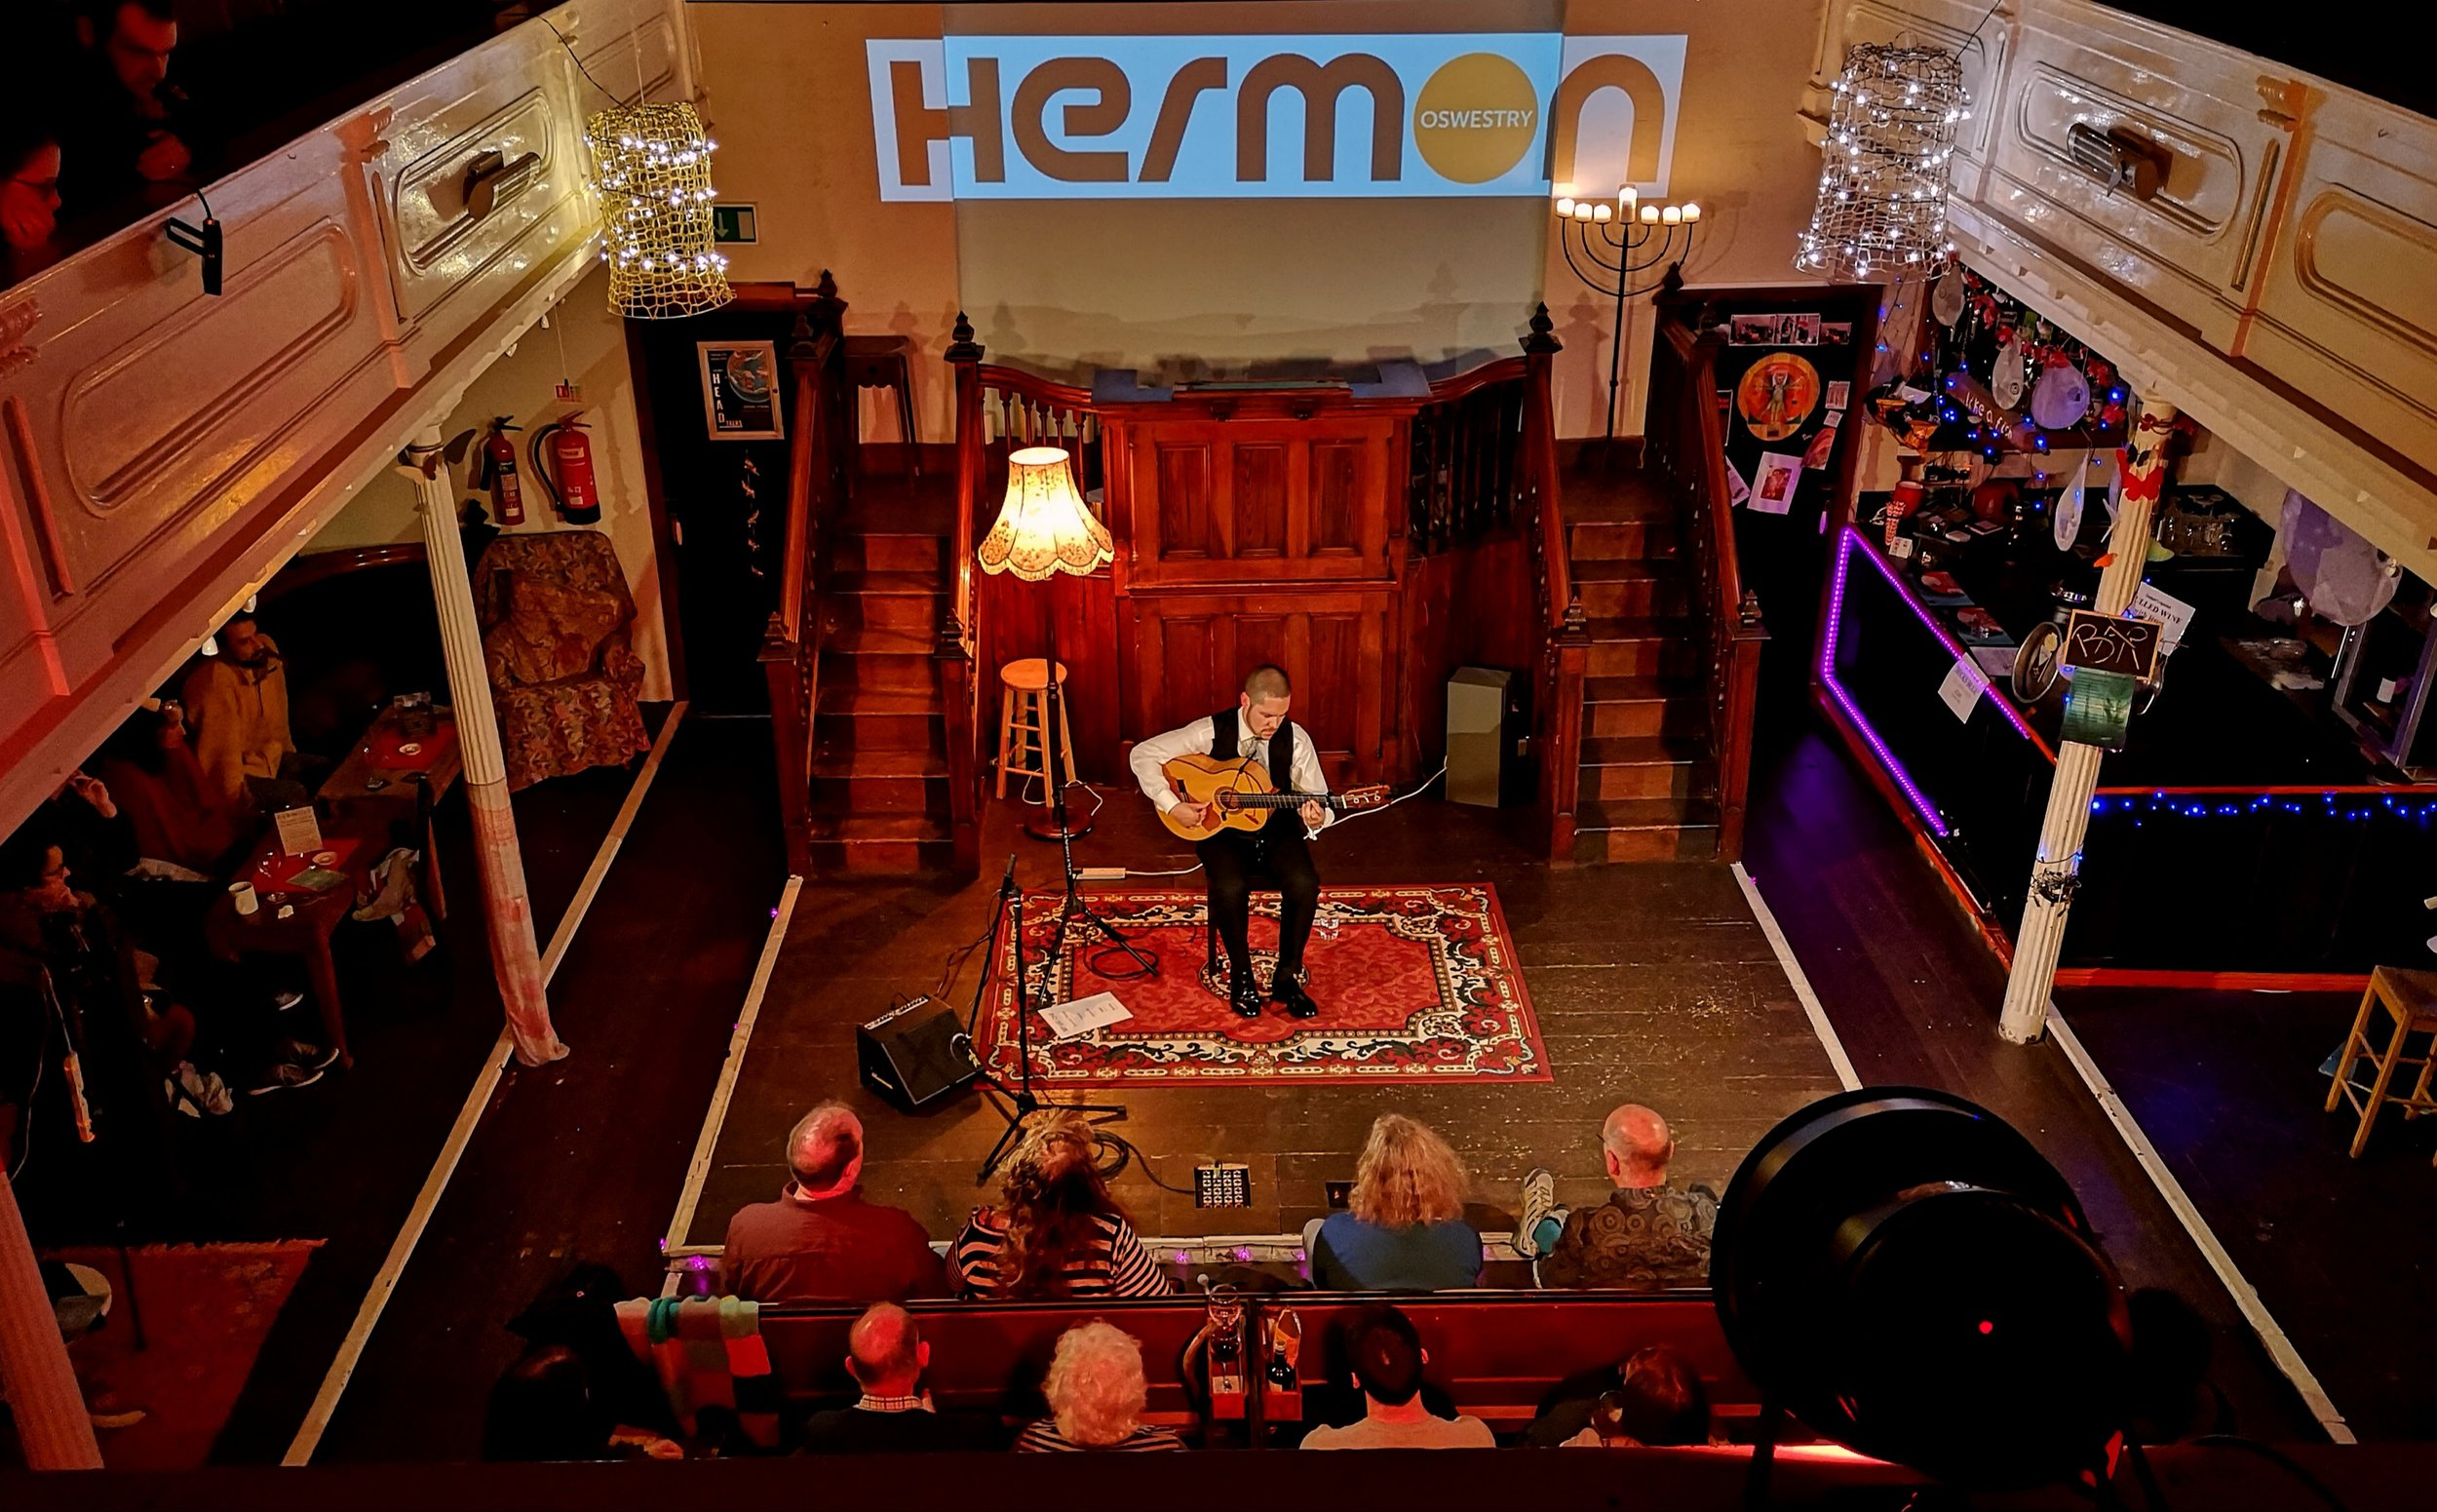 Samuel performing live on Oct 21st in Herman Chapel Arts Centre (Oswestry)